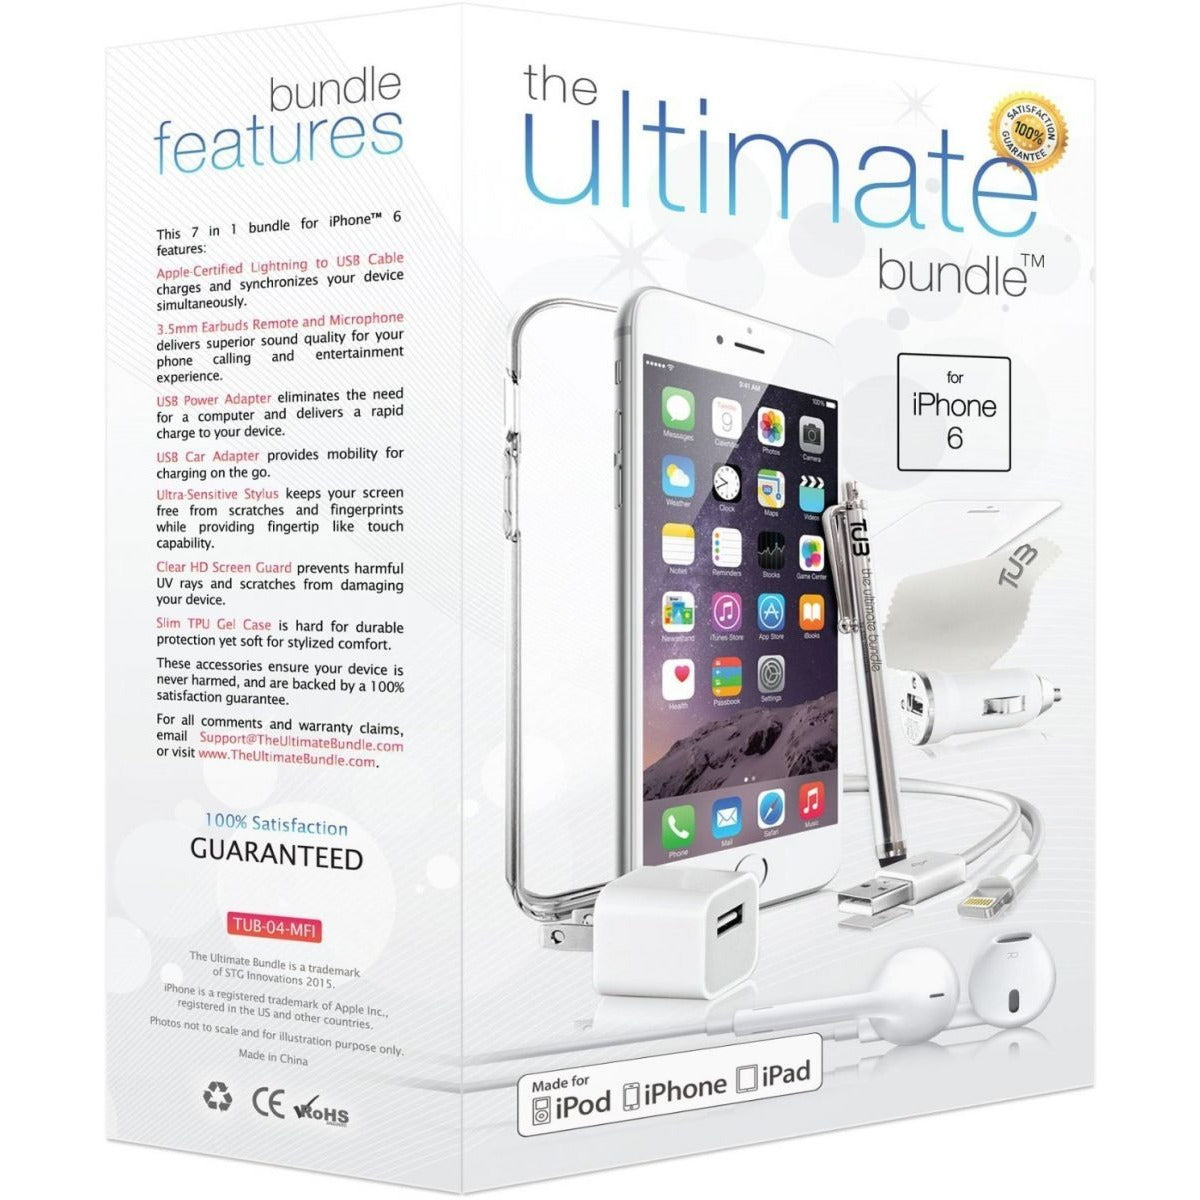 The Ultimate bundle for iphone 6